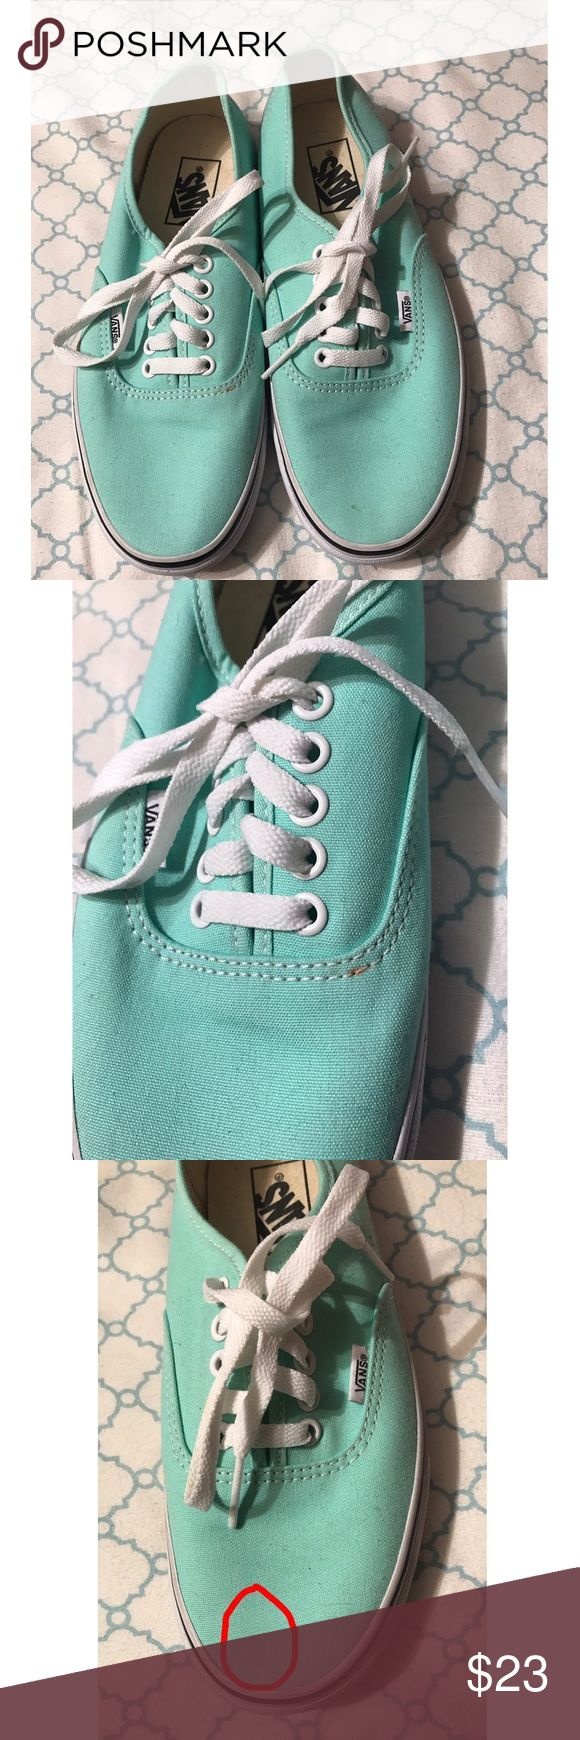 Mint Vans Authentics Never worn. Two small stains as pictured. Vans Shoes Sneakers